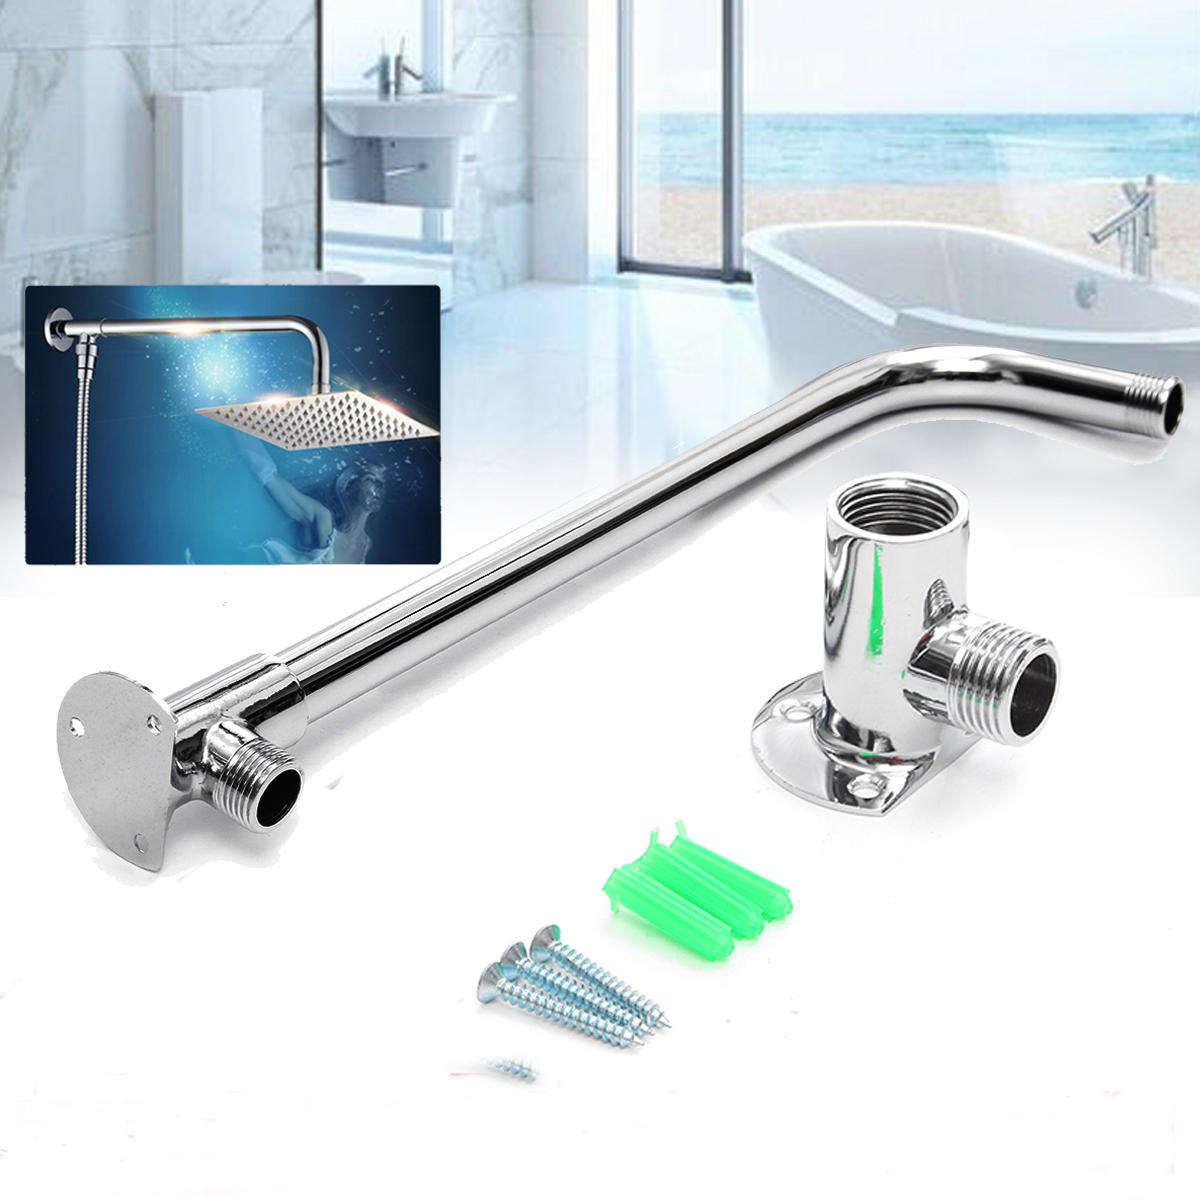 31cm Bathroom Chrome Wall Mounted Shower Extension Arm Pipe Bottom Entry For Rain Shower Head